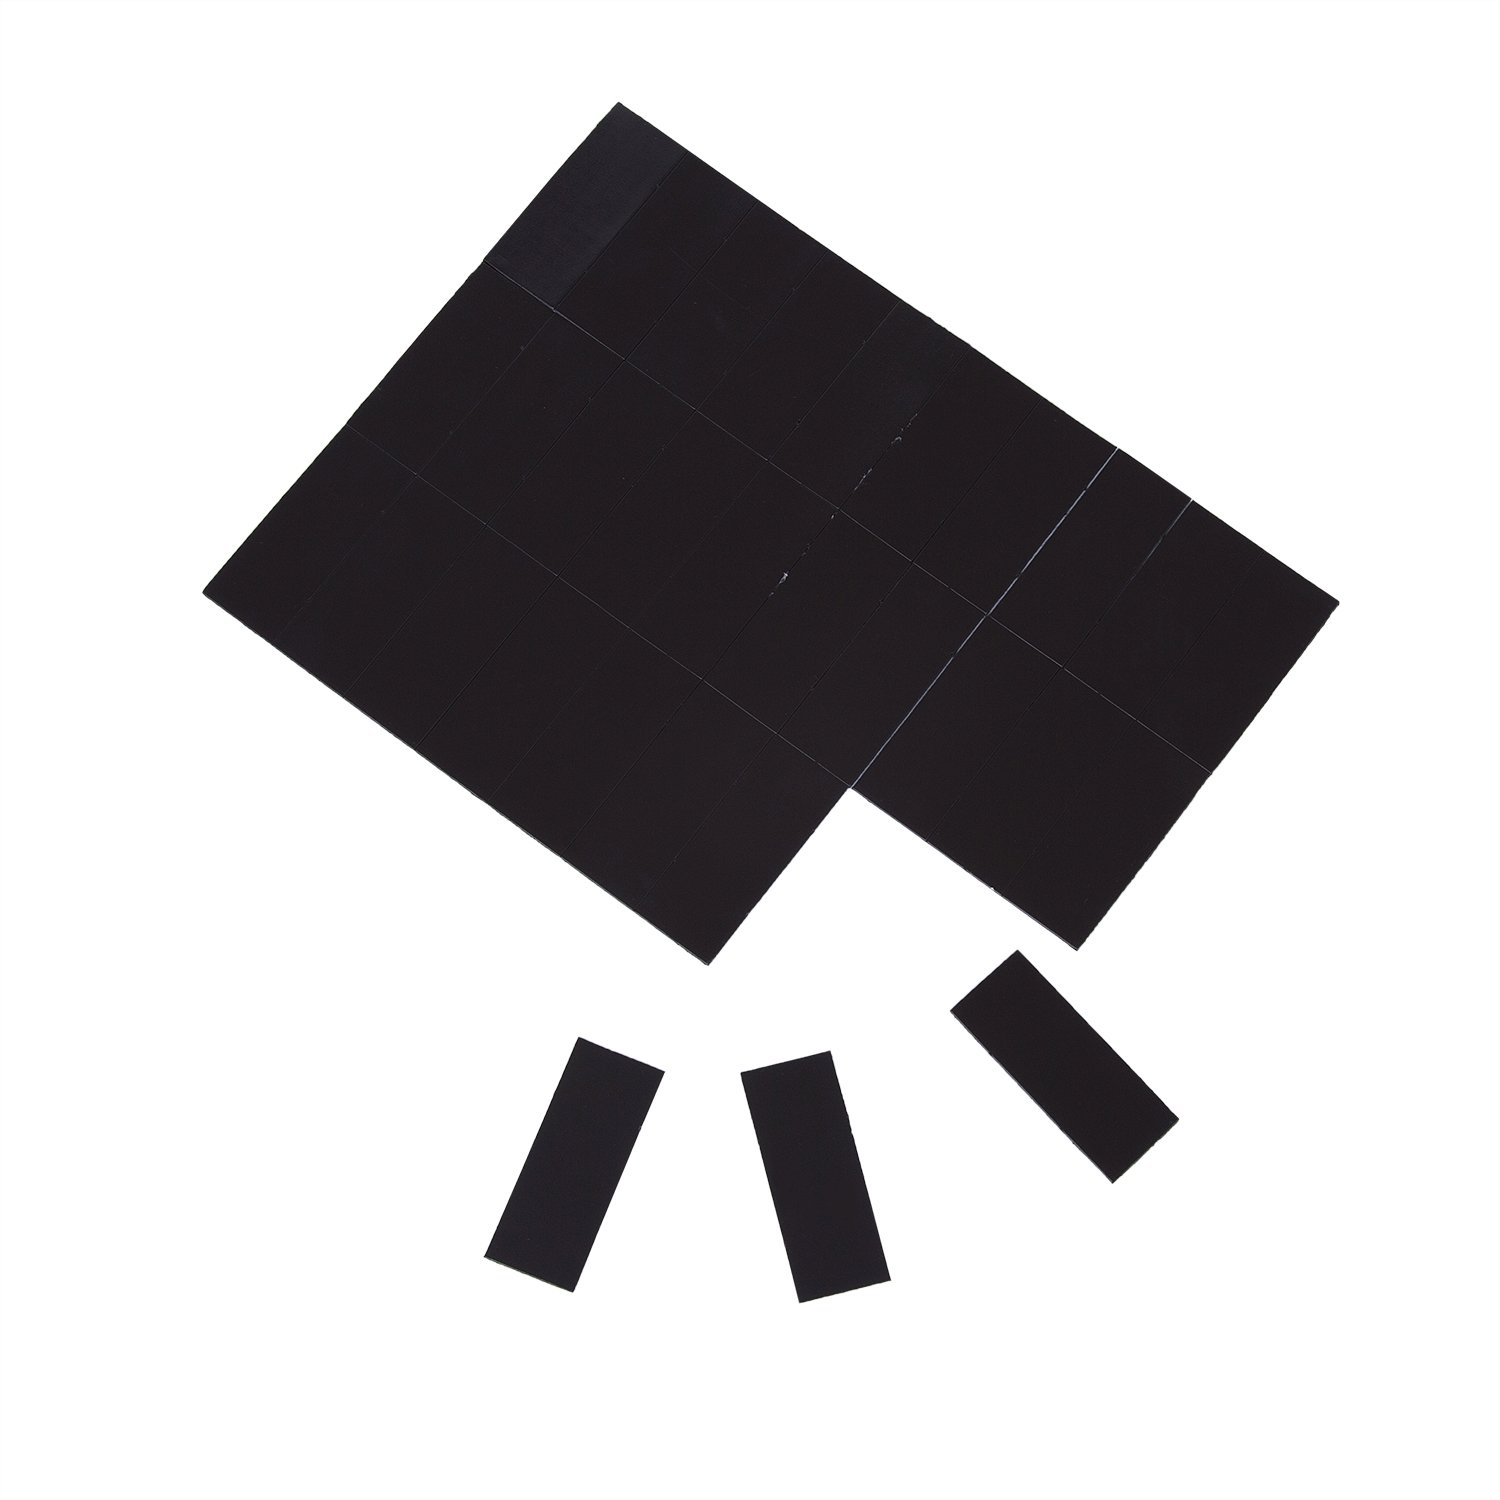 Sadzero Flexible Magnet Rectangle 5cmx2cm(1.96x0.78),30 PCS of Each Paper, Thickness 1mm Adhesive Agnete with Extra Strong Adhesive Force-Black for Use in Refrigerator Door Seals,Etc.